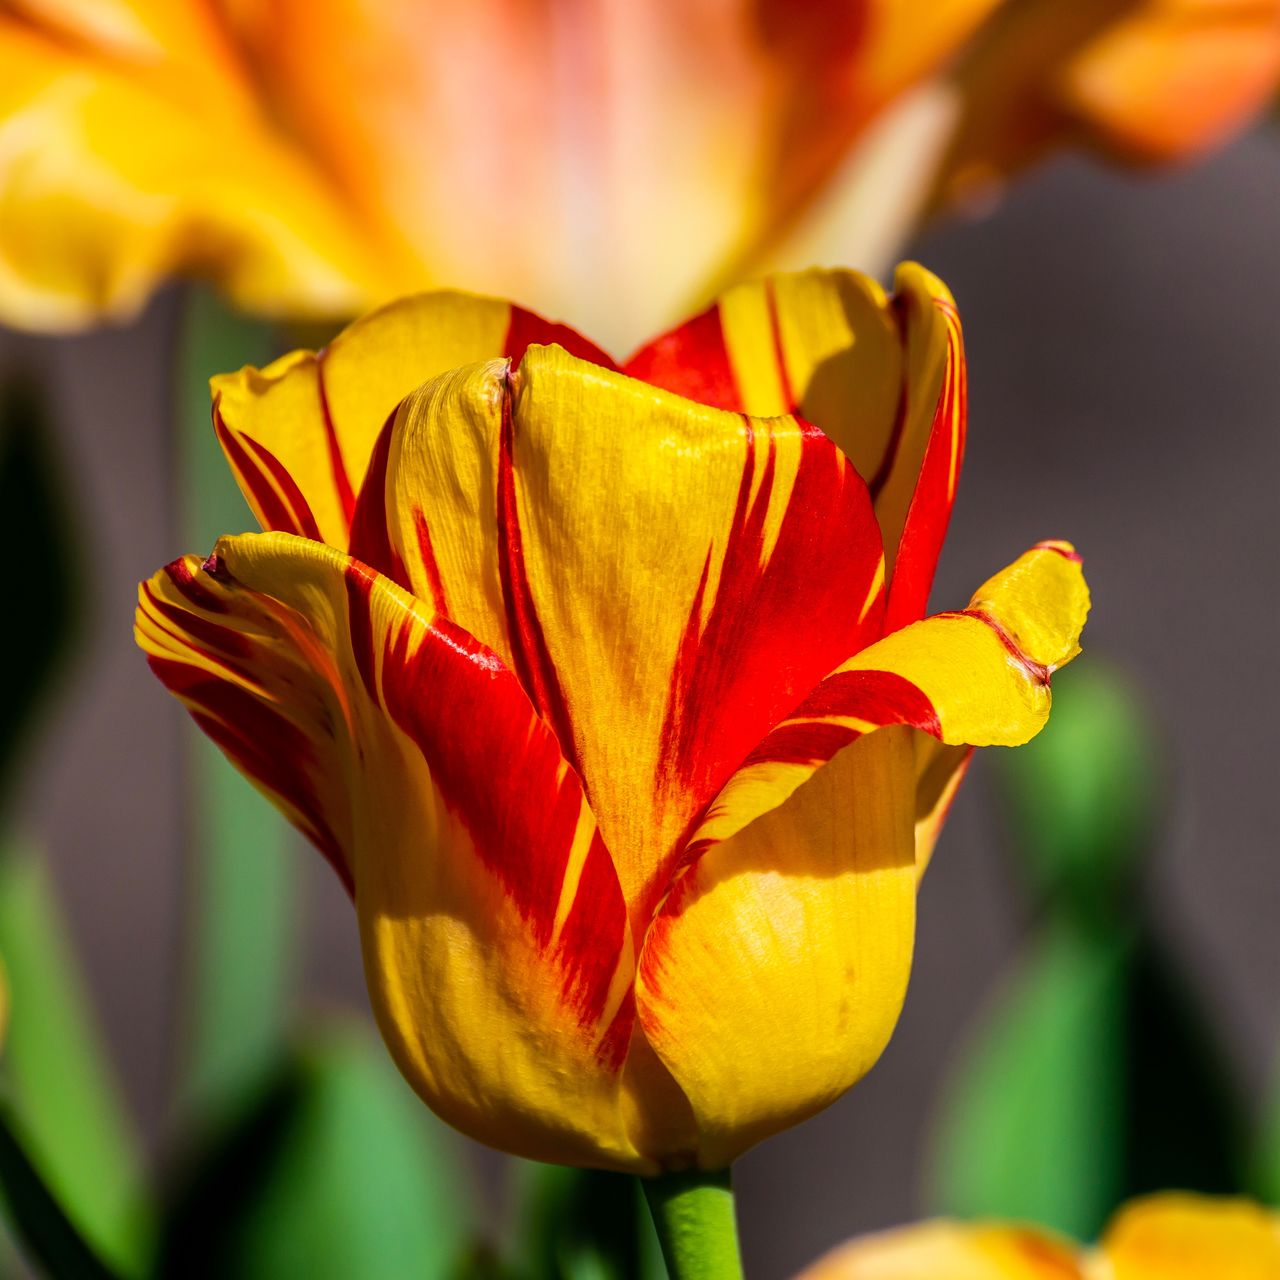 flower, flowering plant, vulnerability, fragility, beauty in nature, petal, plant, freshness, flower head, inflorescence, close-up, focus on foreground, growth, yellow, nature, red, no people, tulip, orange color, outdoors, sepal, flower arrangement